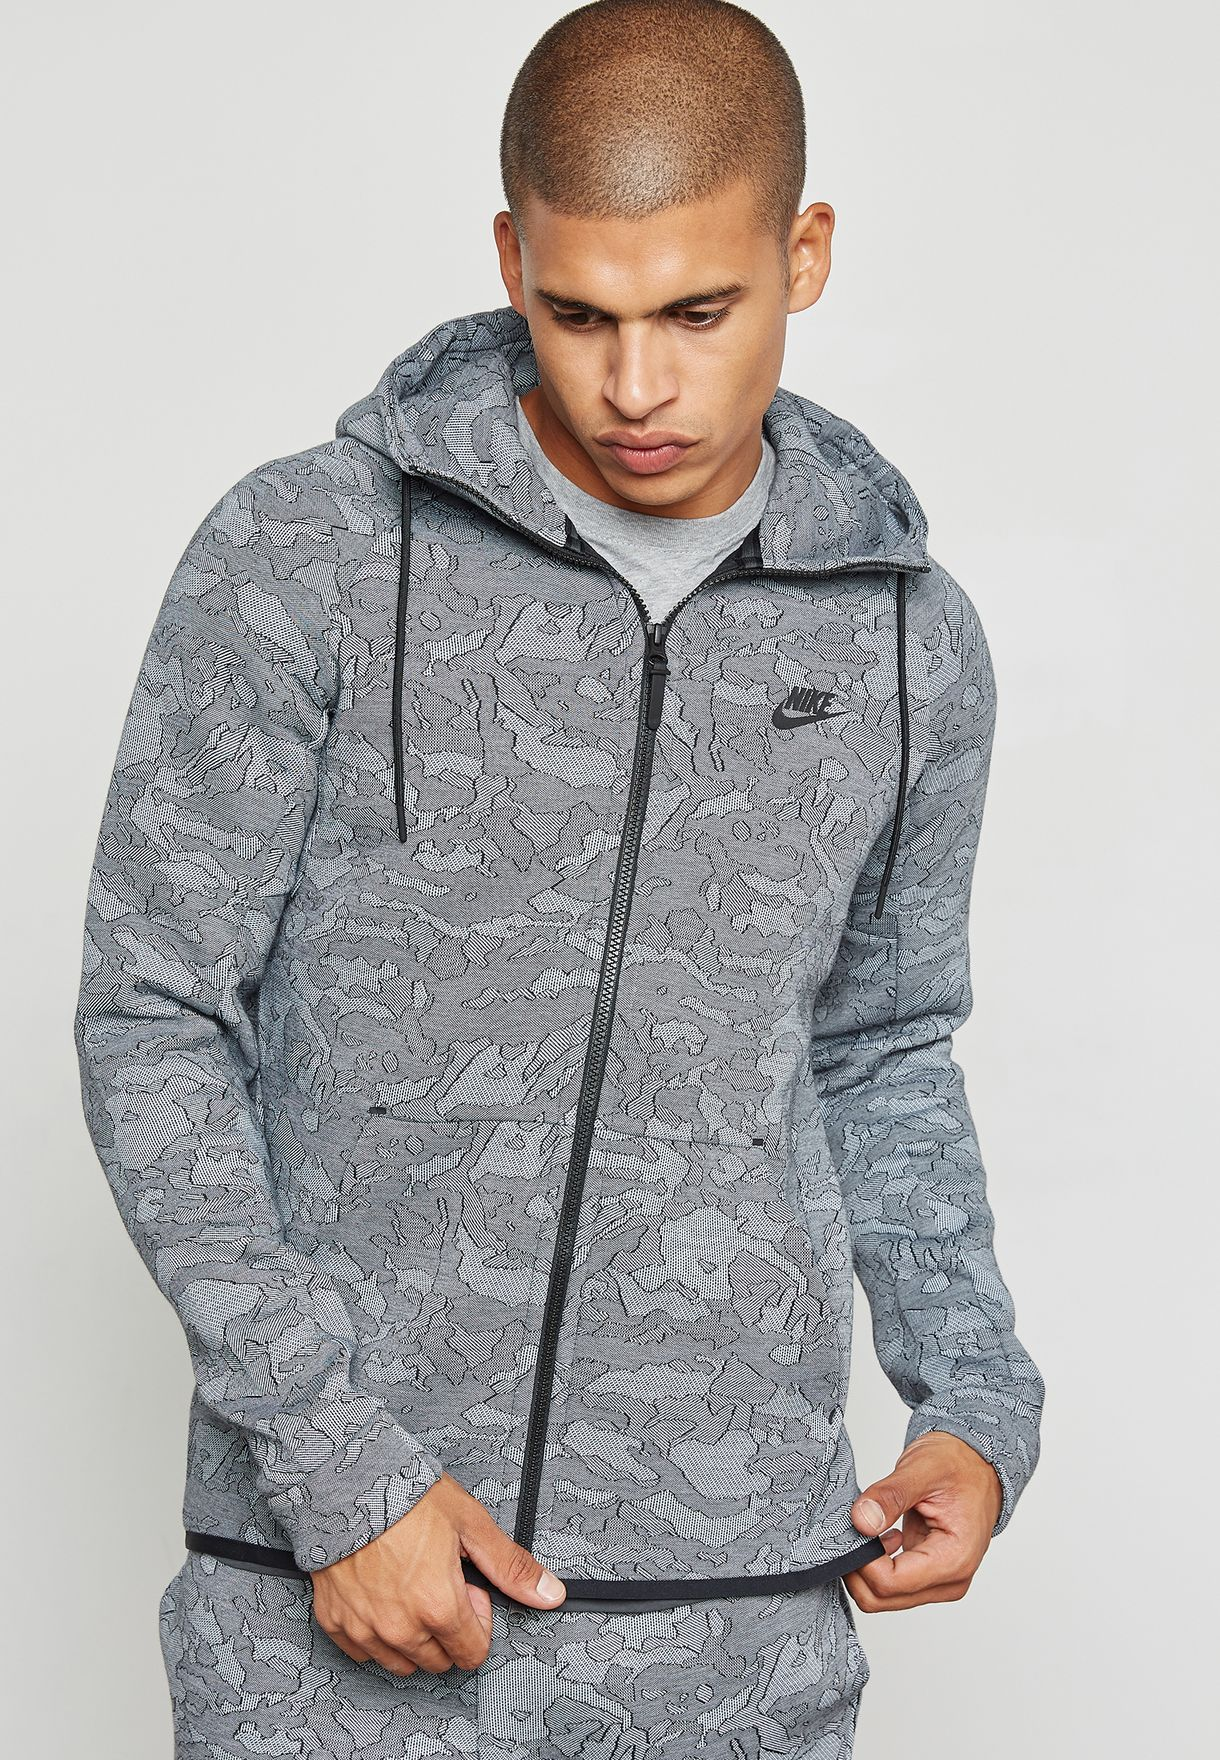 2b8d95205e09 Shop Nike prints Tech Fleece Jacquard Hoodie 863814-466 for Men in ...